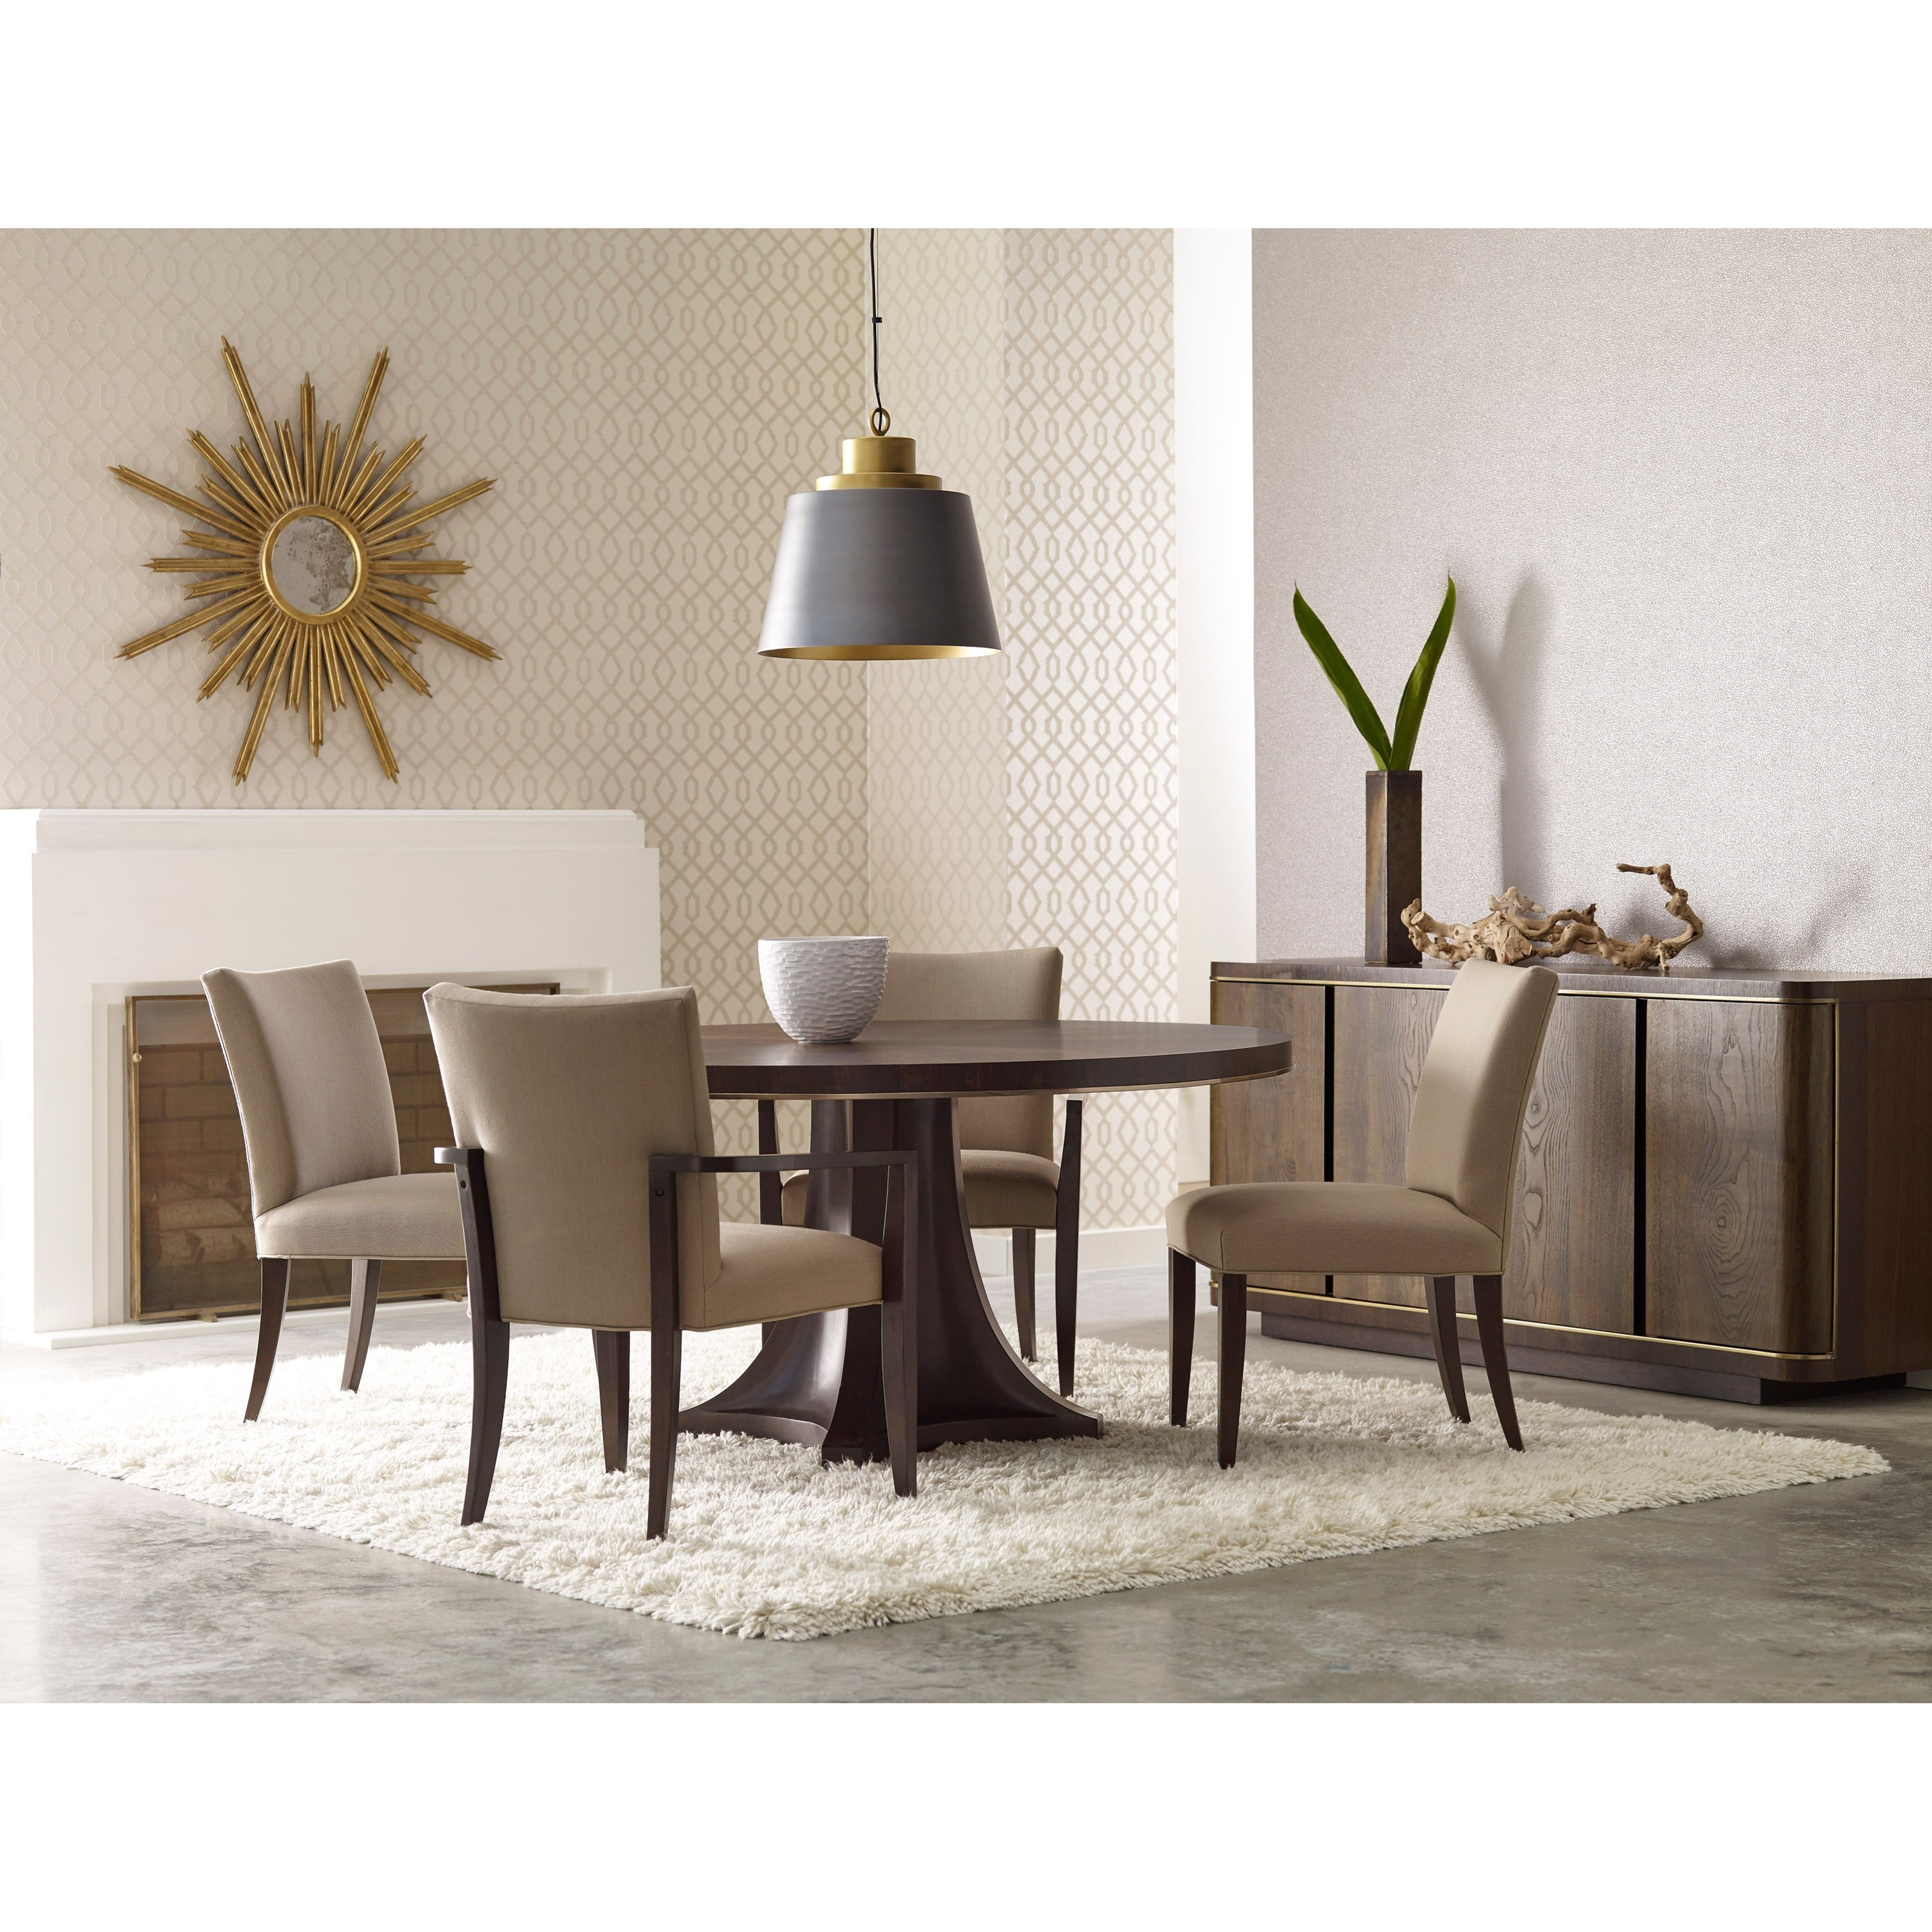 pedestal dining room table. American Drew Ad Modern Organics Camby Round Pedestal Dining Table Room +